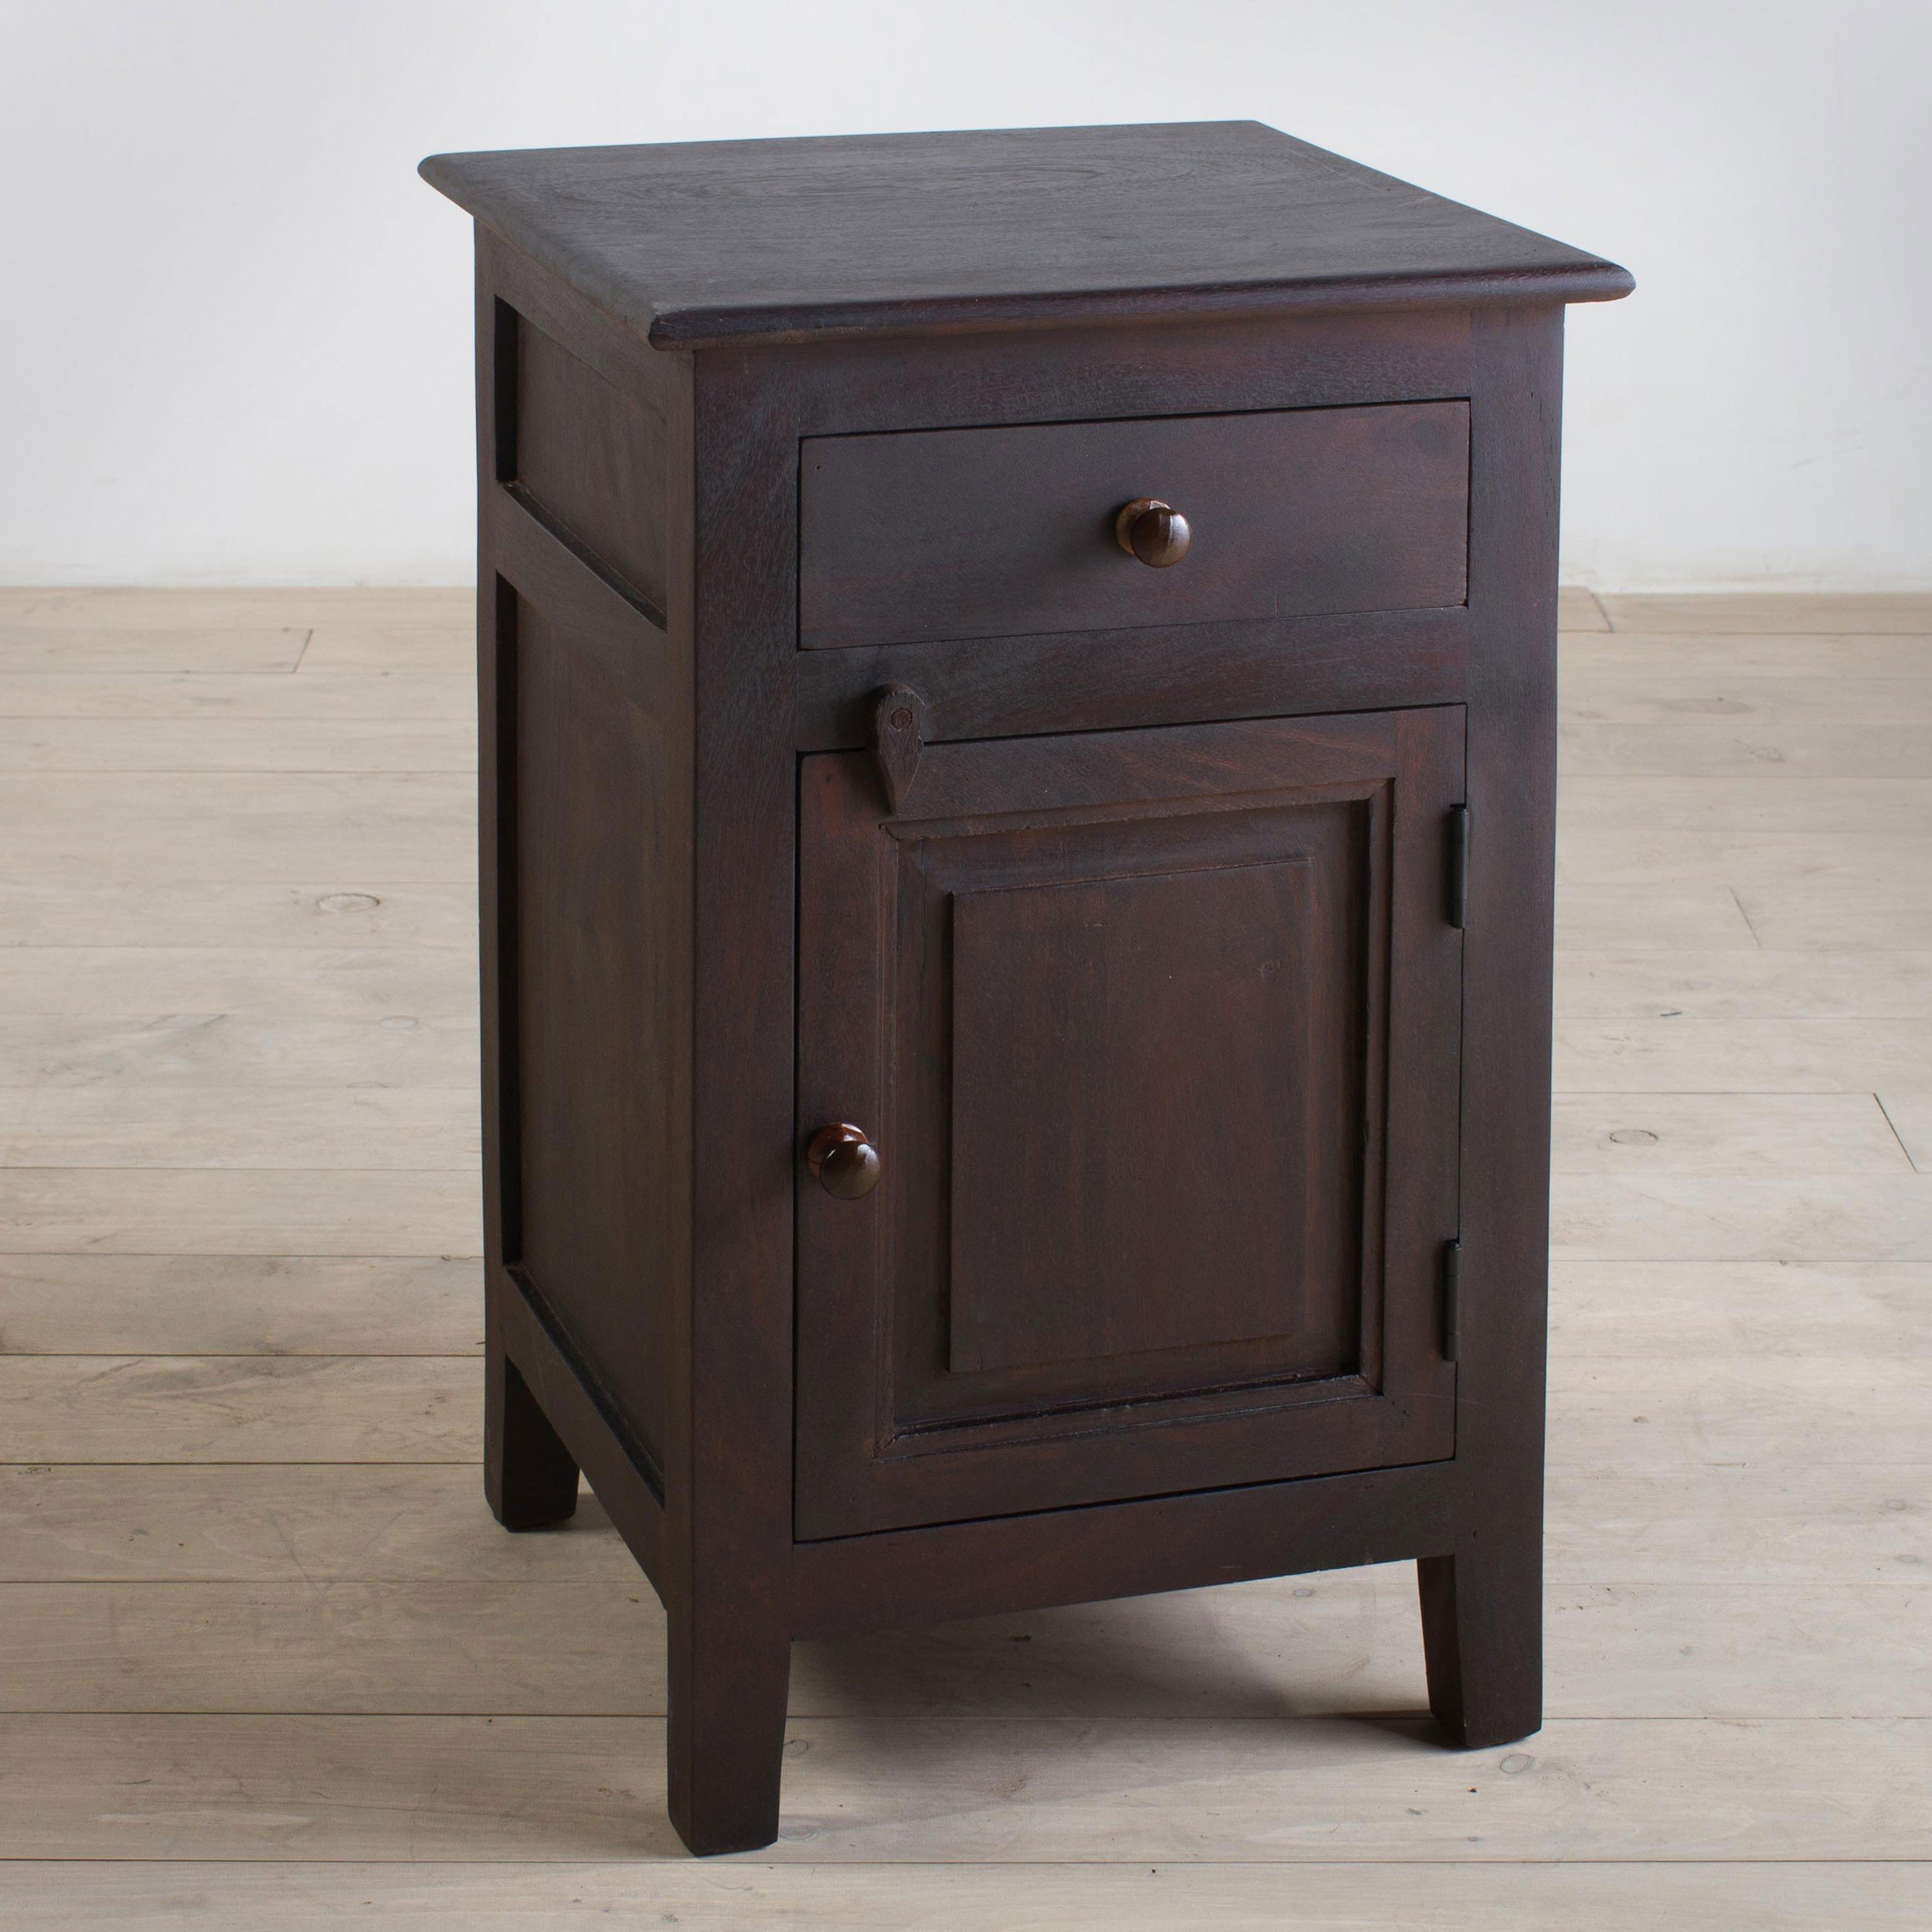 handmade rosewood nightstand with forged iron hardware accent table free shipping today outdoor grill work plastic nic tables bulk tablecloths ikea garden shelf thrive furniture